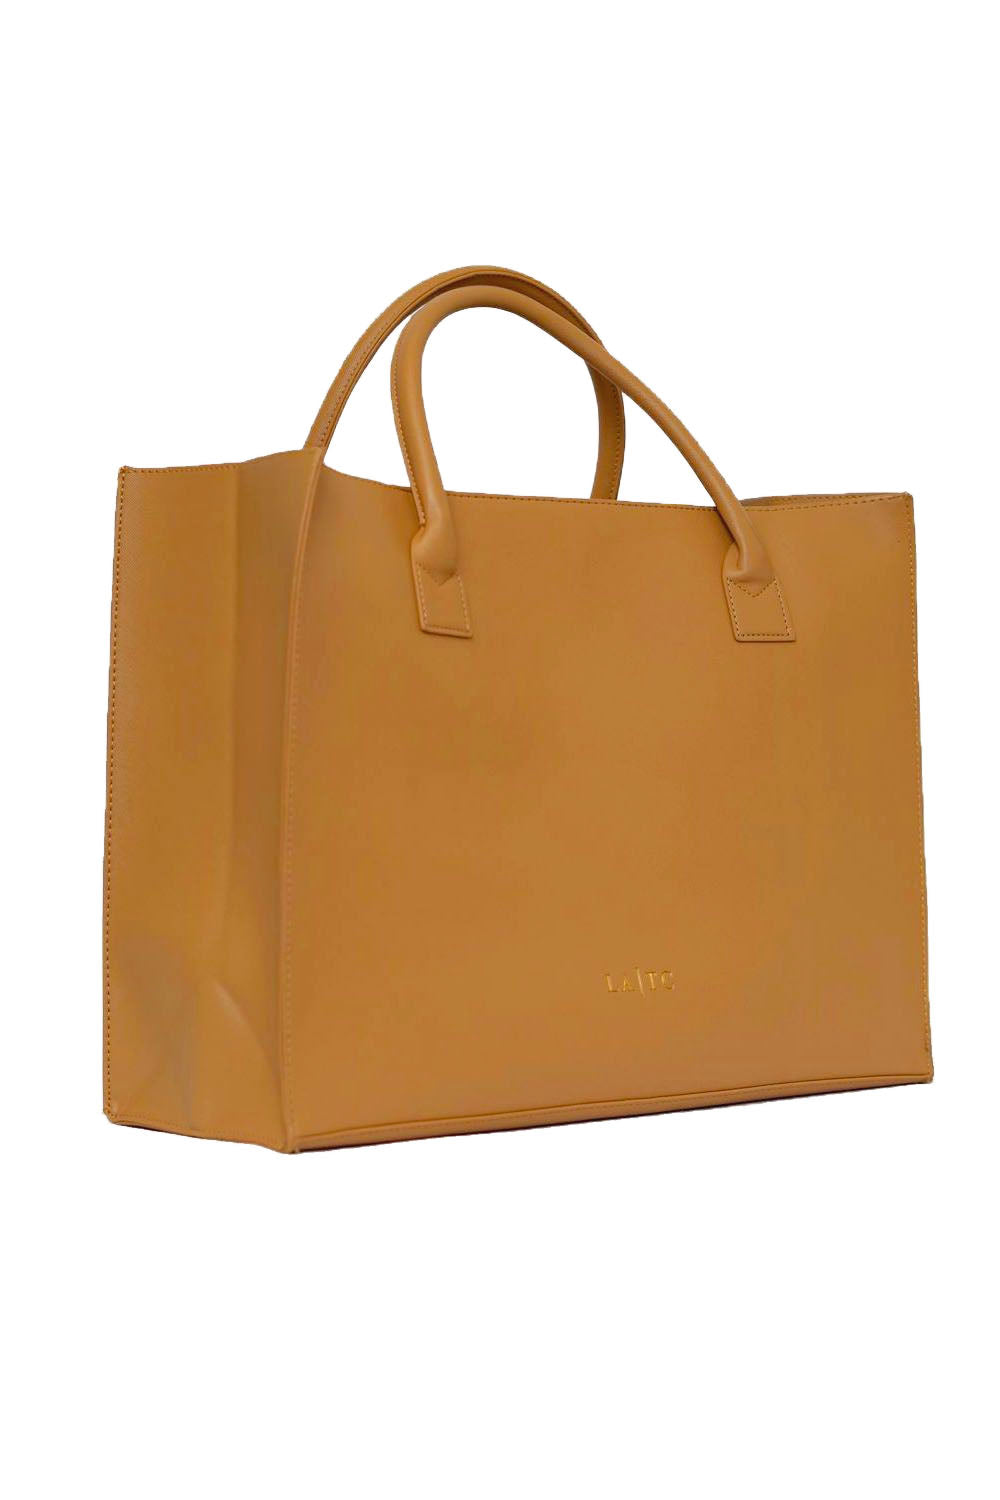 MODERN VEGAN TOTE- Dress like Coco (Tan)